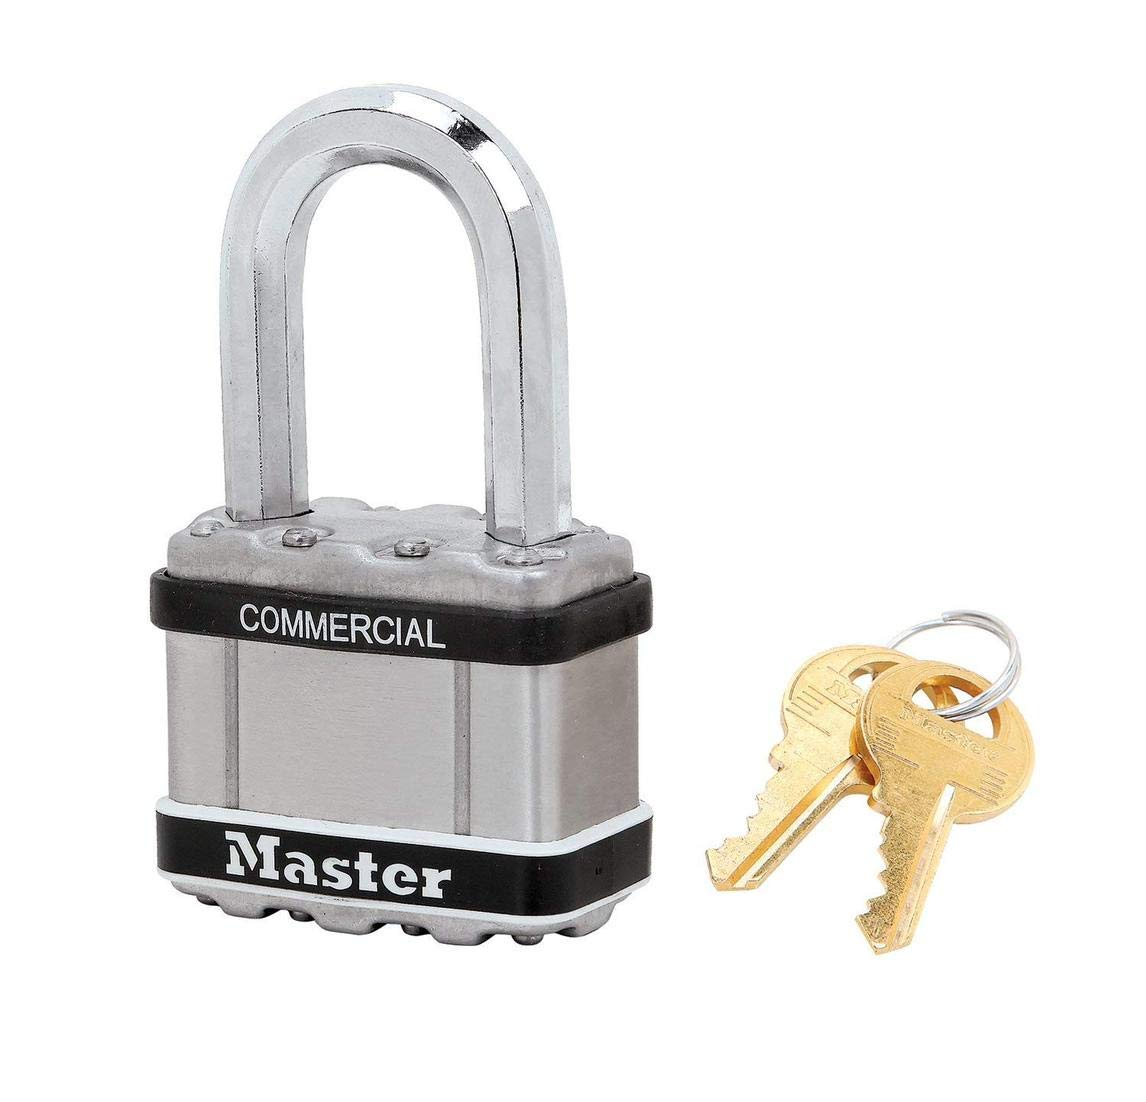 Master Lock Magnum Padlock - 2'' W x 1-1/2''L Shackle, One (1) Keyed Alike Lock M5NKASTSLF w/BumpStop Technology